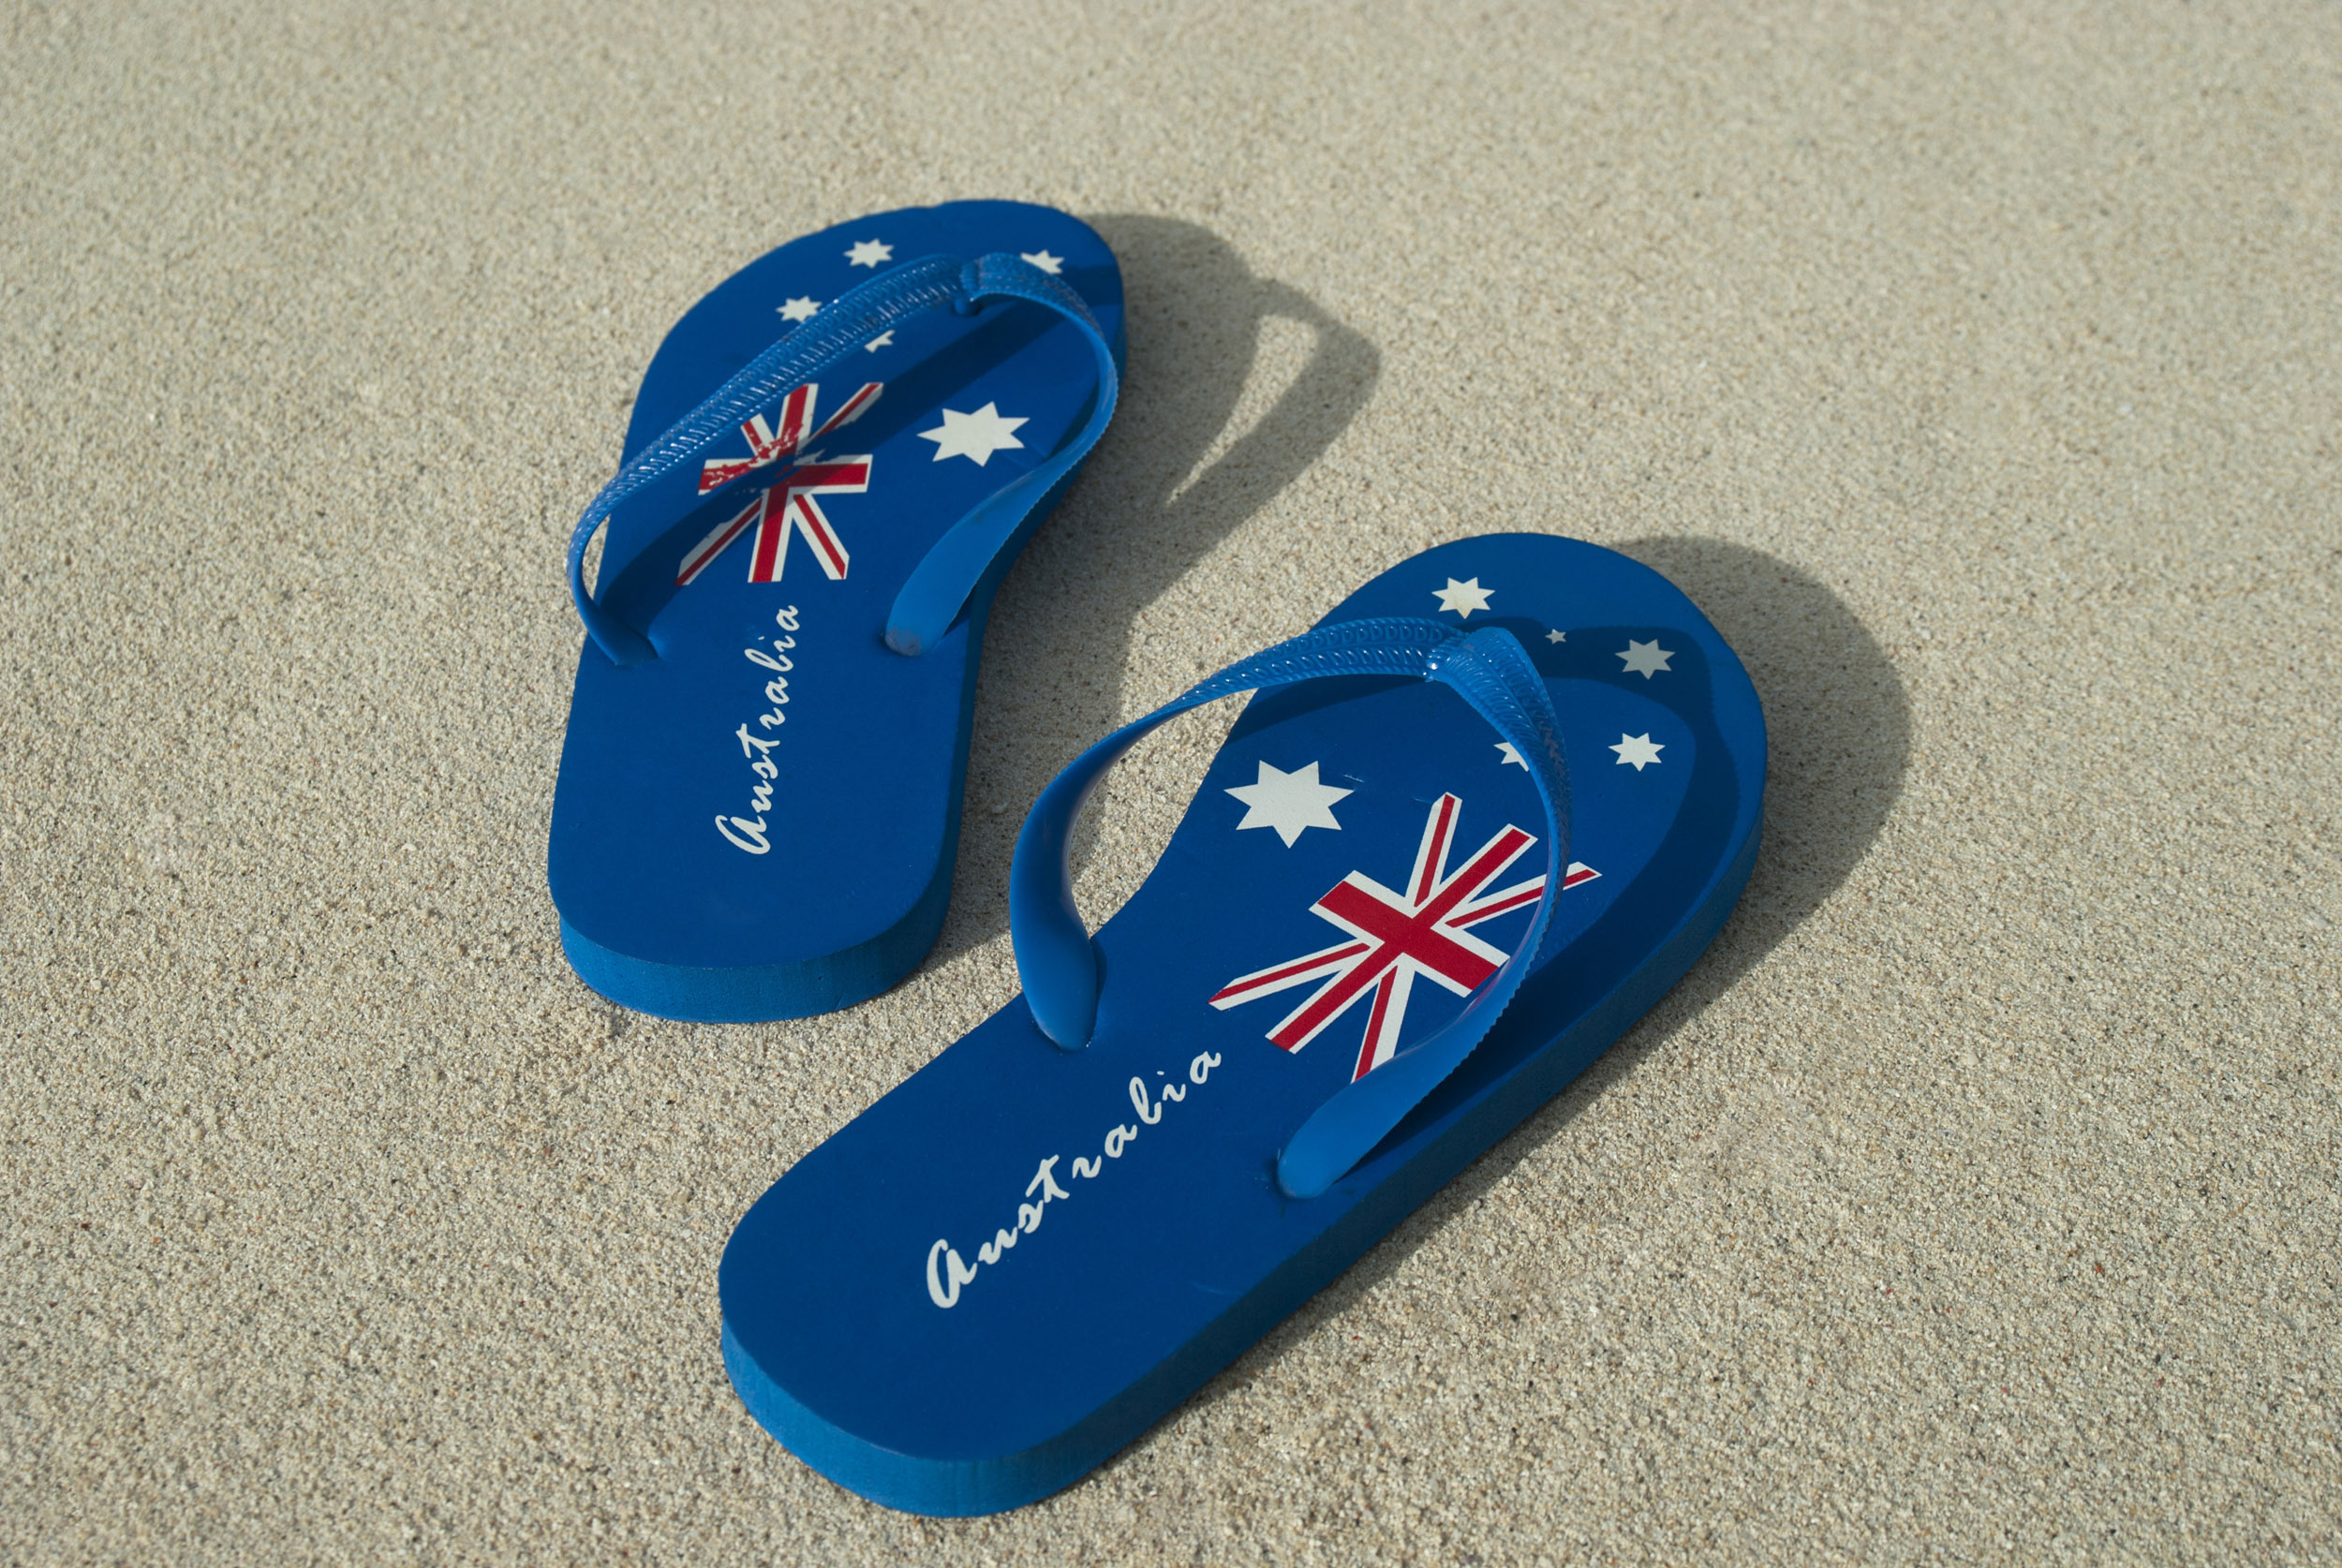 A pair of blue Australia day thongs with national flag design on a sandy beach.